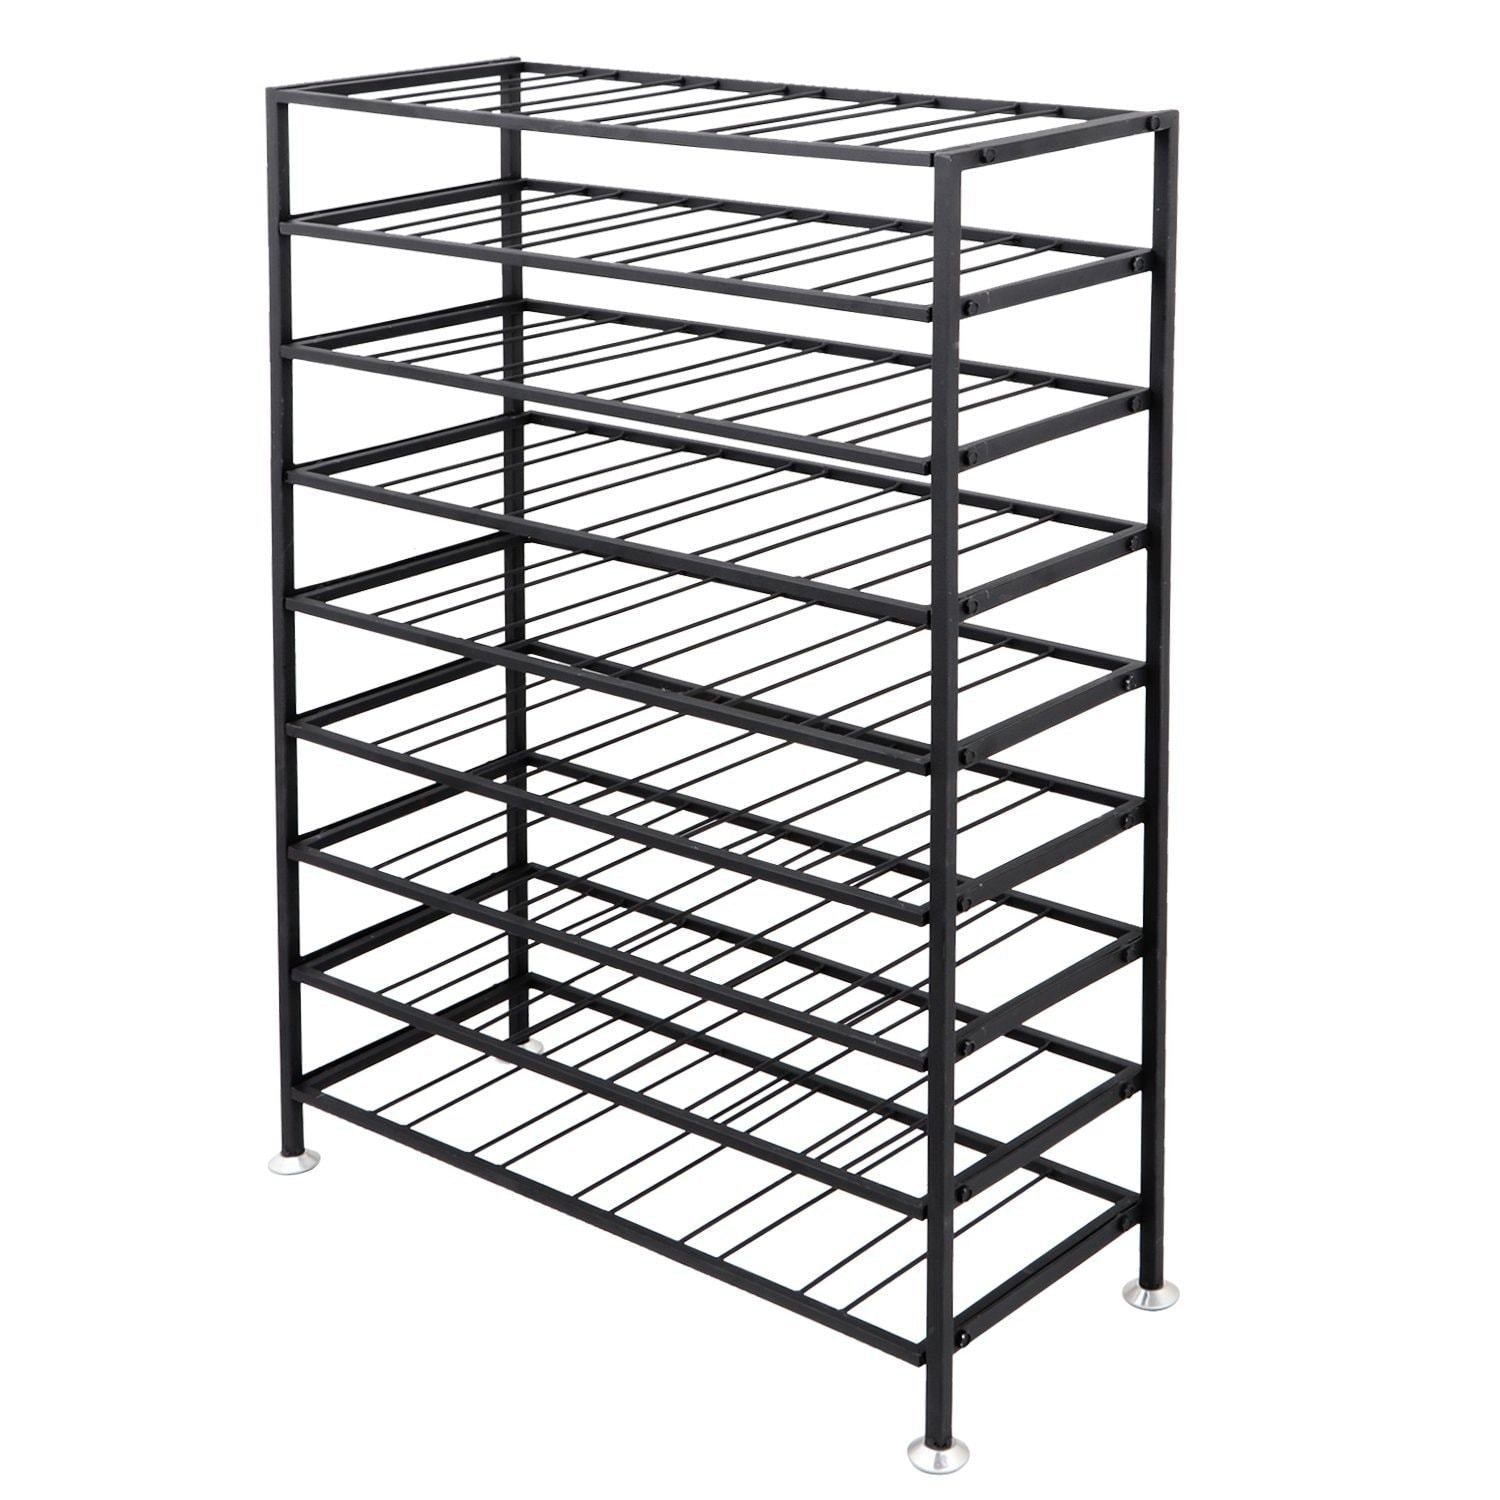 Save homgarden 54 bottle free standing deluxe large foldable metal wine rack cellar storage organizer shelves kitchen decor cabinet display stand holder